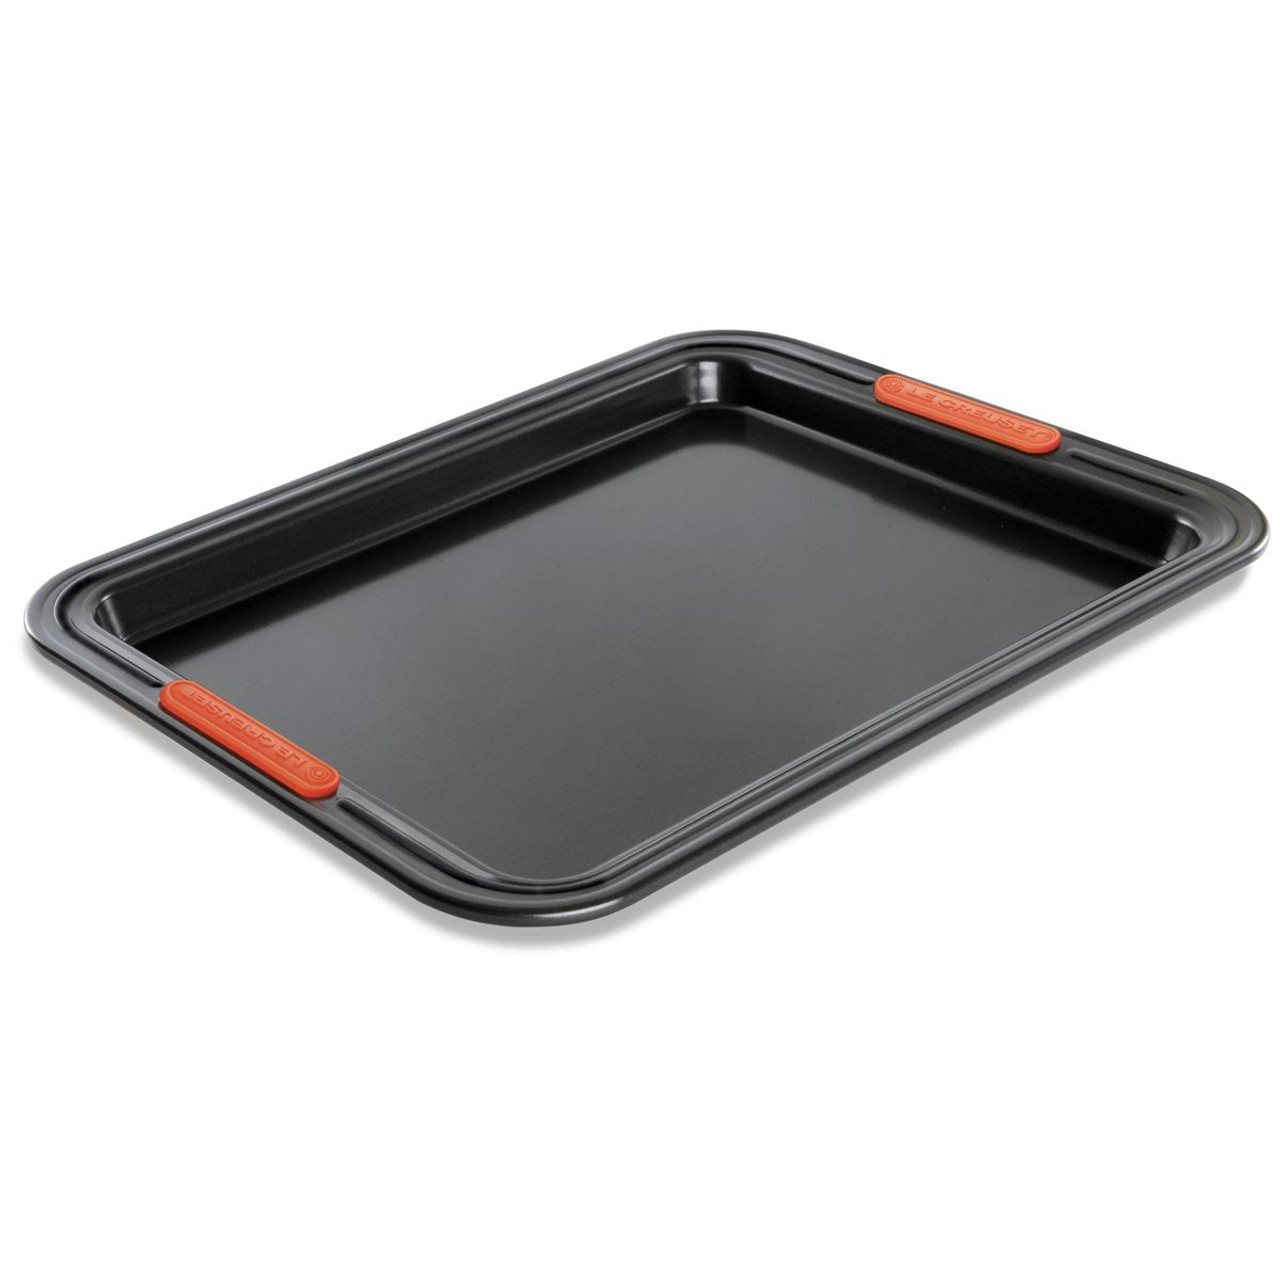 Le Creuset Toughened Non-Stick Swiss Roll Tray